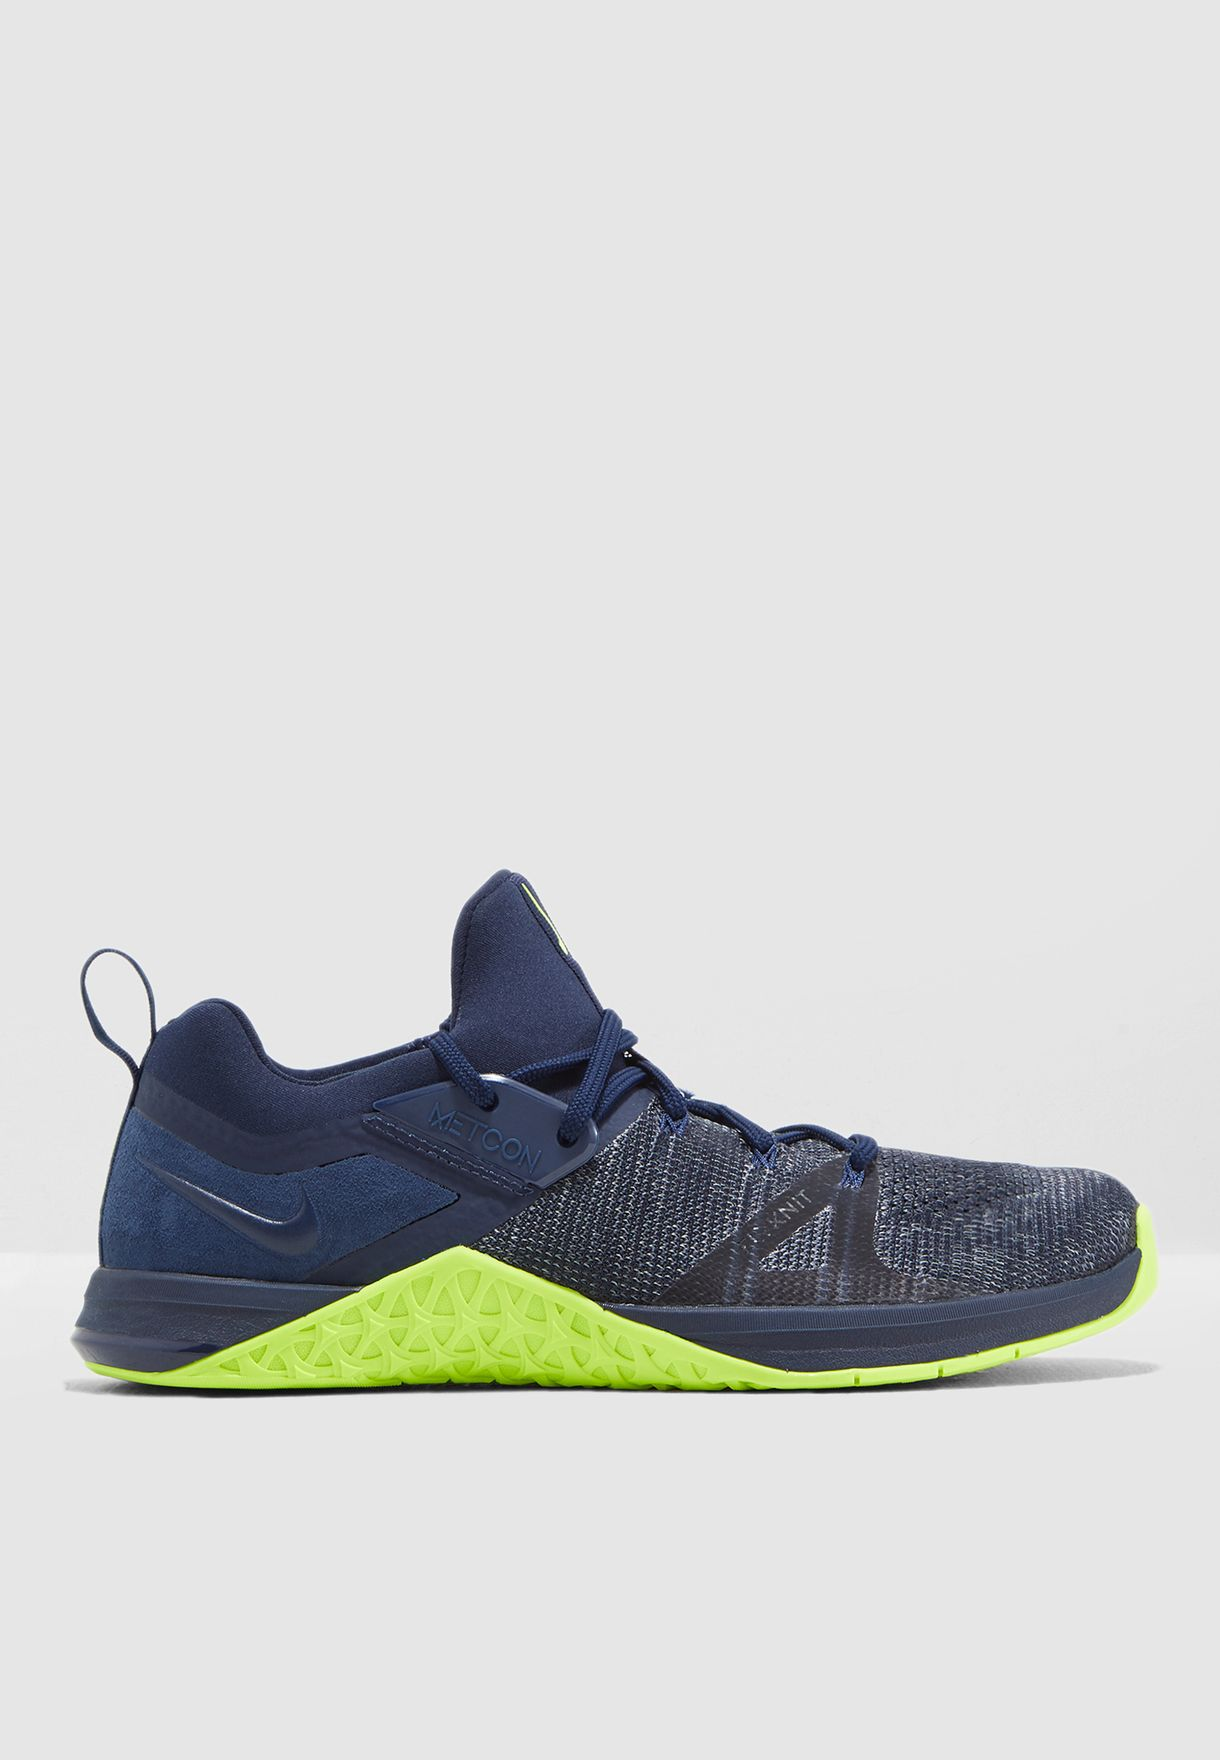 8a44fb6cbda4 Shop Nike navy Metcon Flyknit 3 AQ8022-407 for Men in UAE - 72704SH96PWP